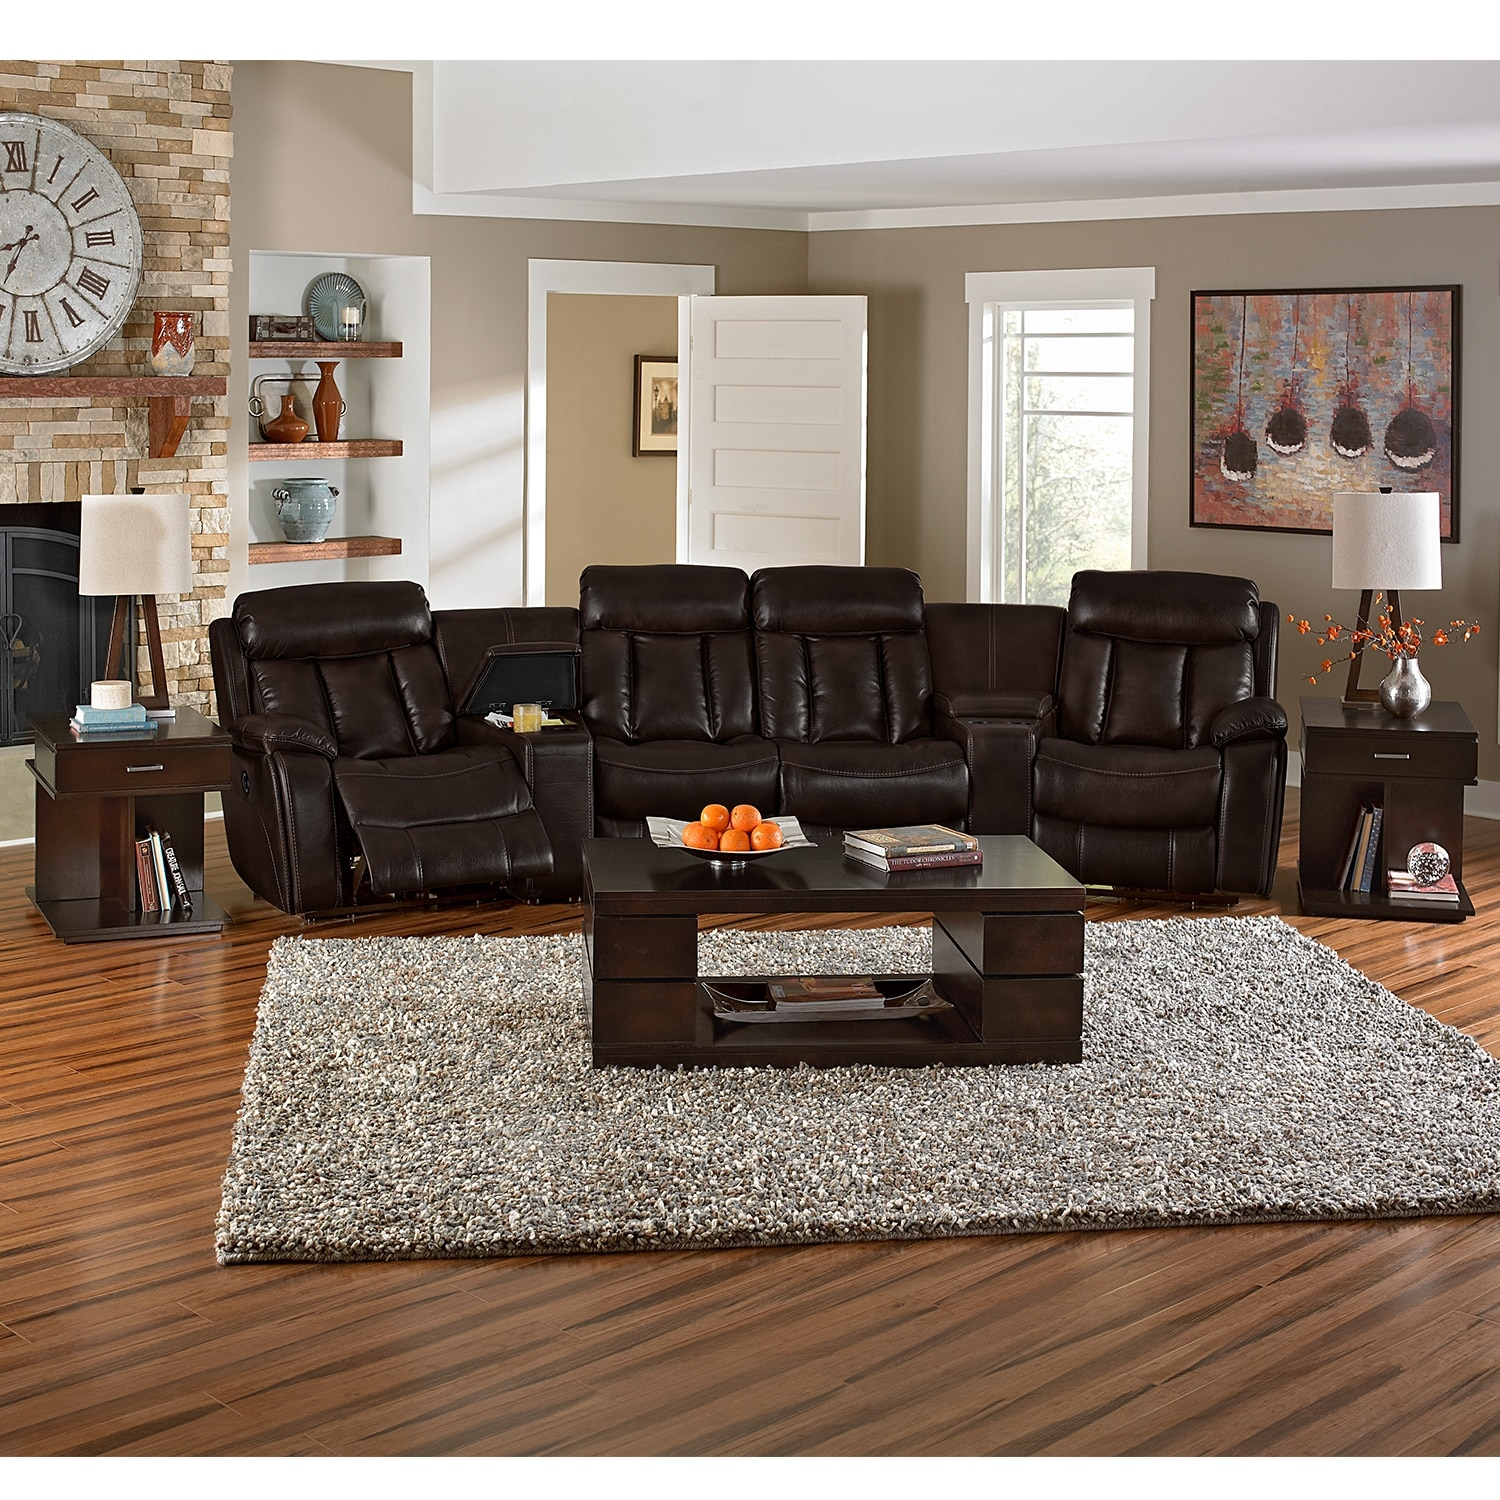 Walnut Living Room Furniture Diablo 6 Piece Power Reclining Sectional With 2 Armless Recliners